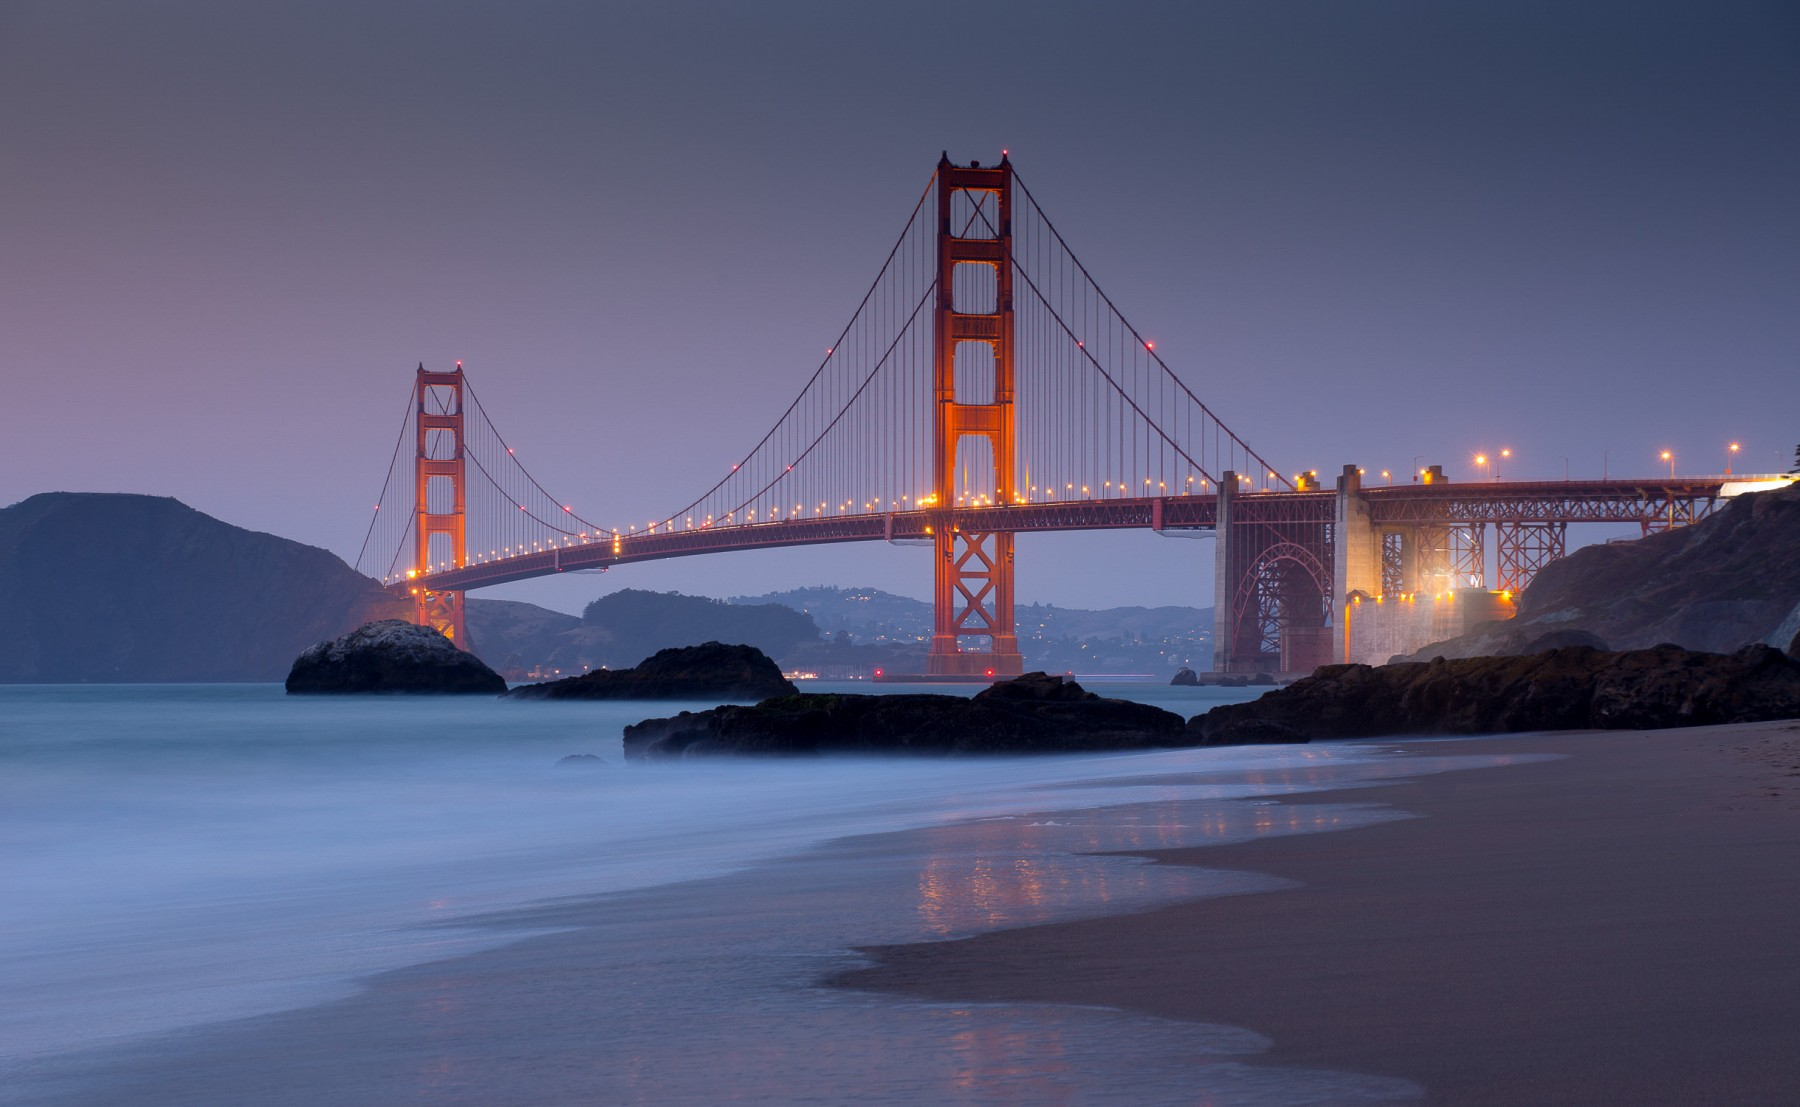 Night Photography: San Francisco & Marin Headlands